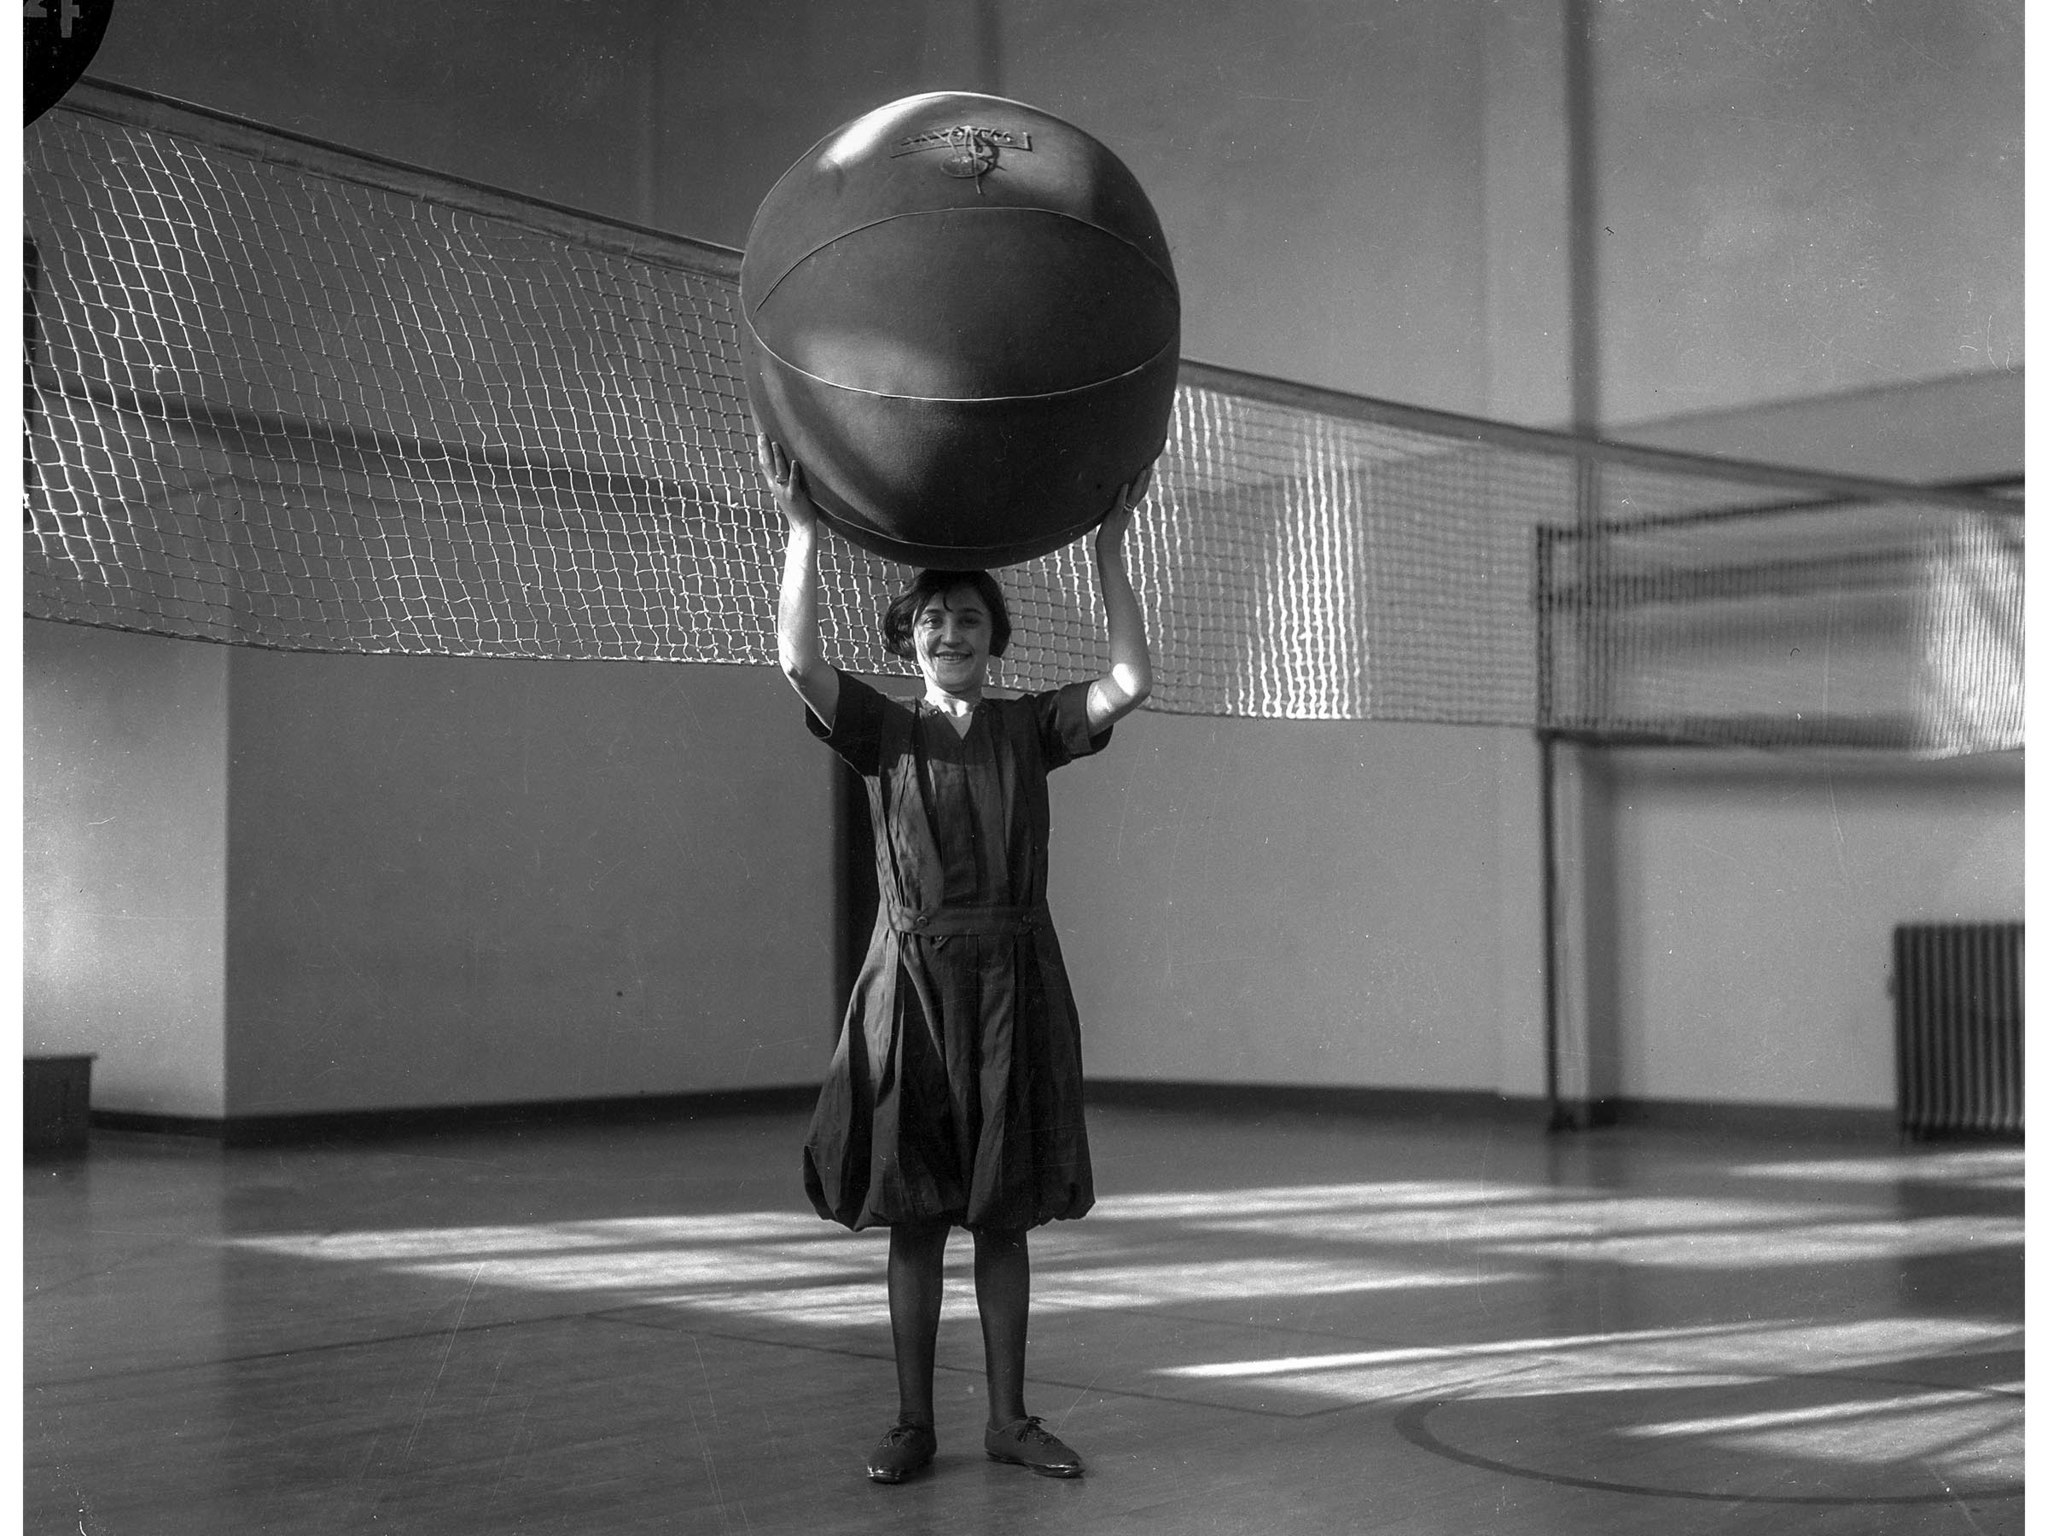 Feb. 16, 1926: Charlotte Young plays cage ball at the Y.W.C.A., Los Angeles, 1926. Cage ball has bee